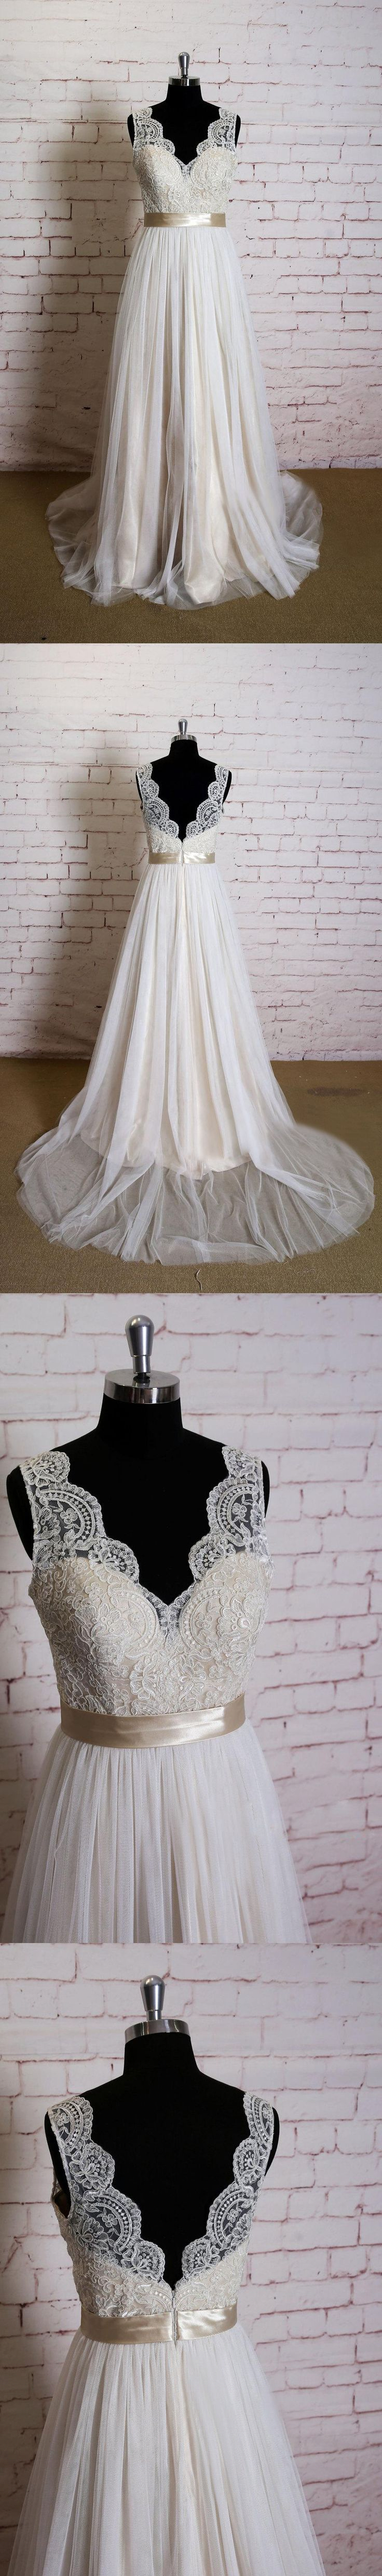 Lace Bodice Sleeveless Tulle Skirt A-Line Wedding Dress with Belt